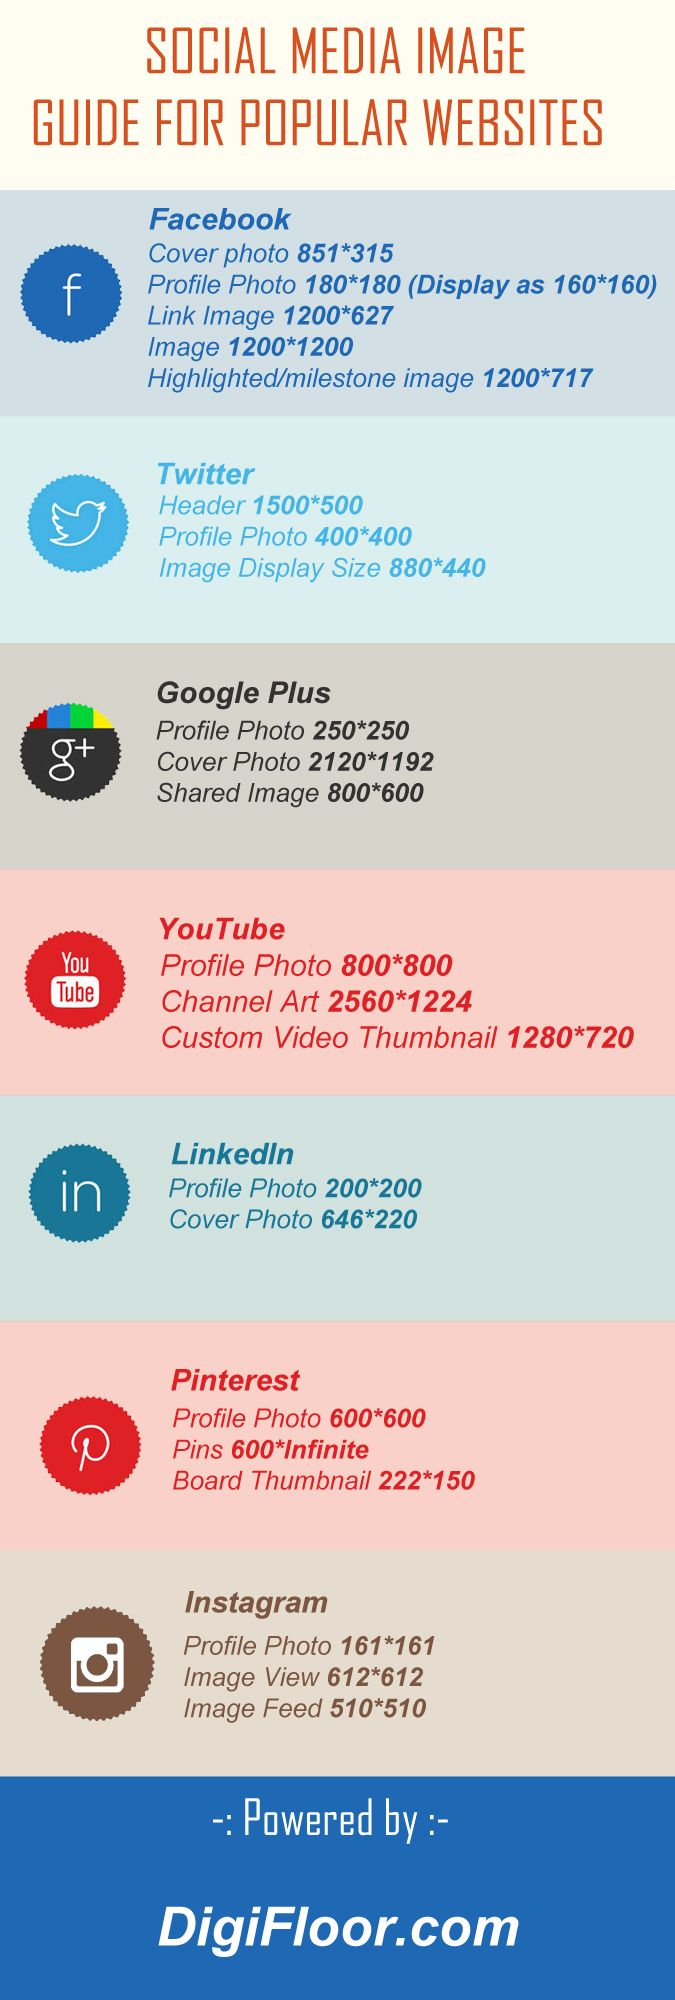 Recommended Social Media Image Sizes and Resolution